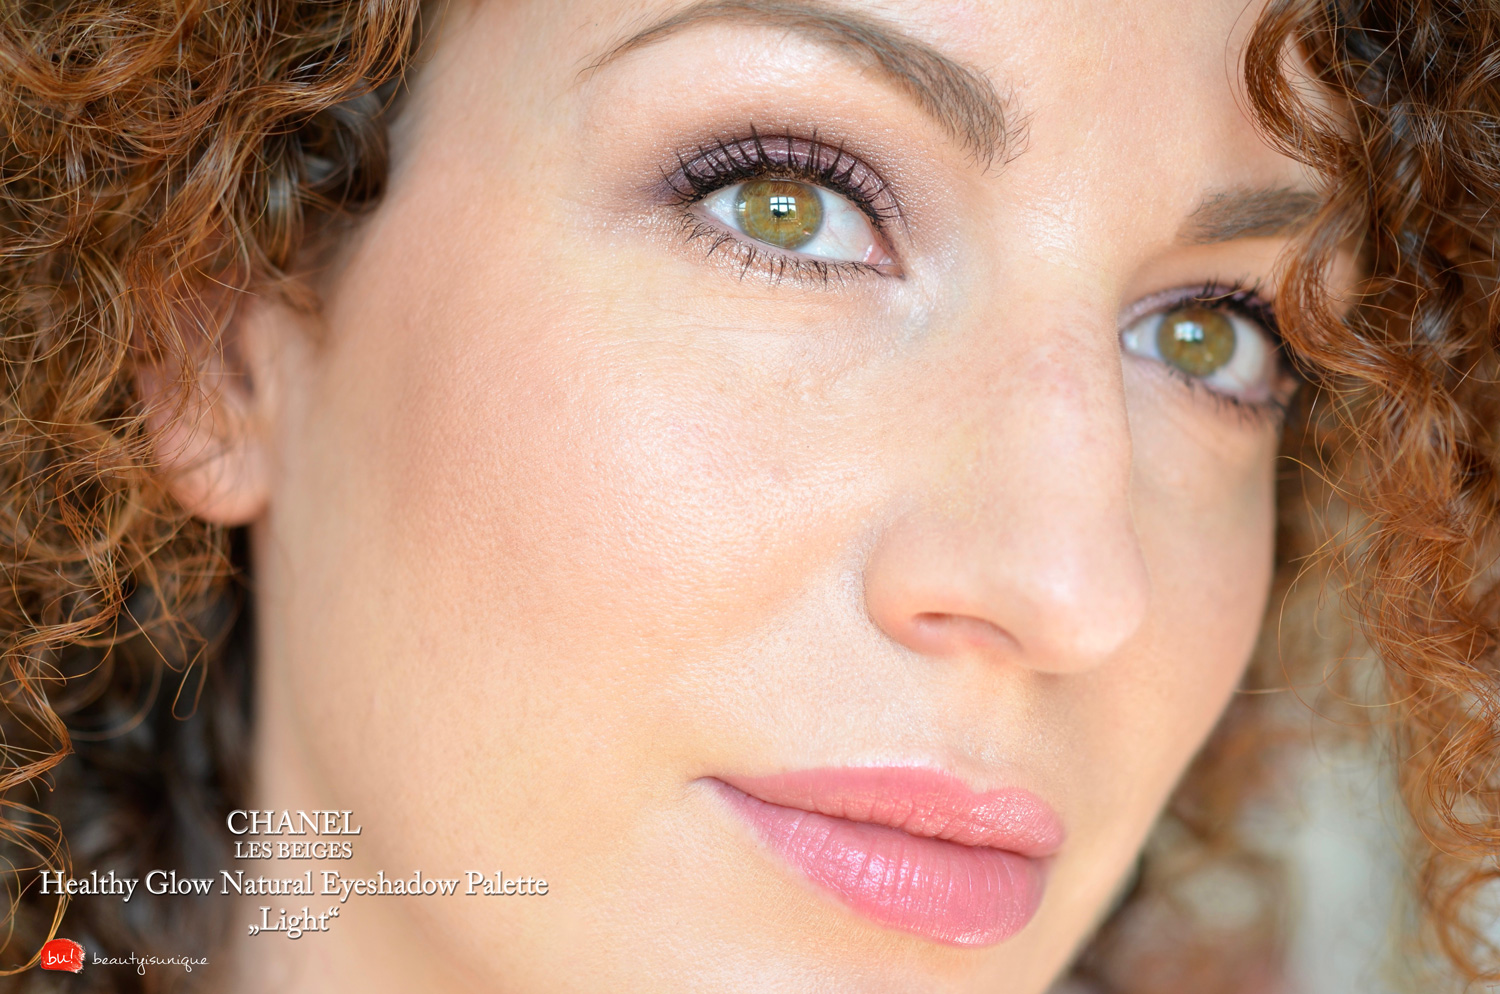 Chanel-les-beiges-eyeshadow-palette-light-swatches